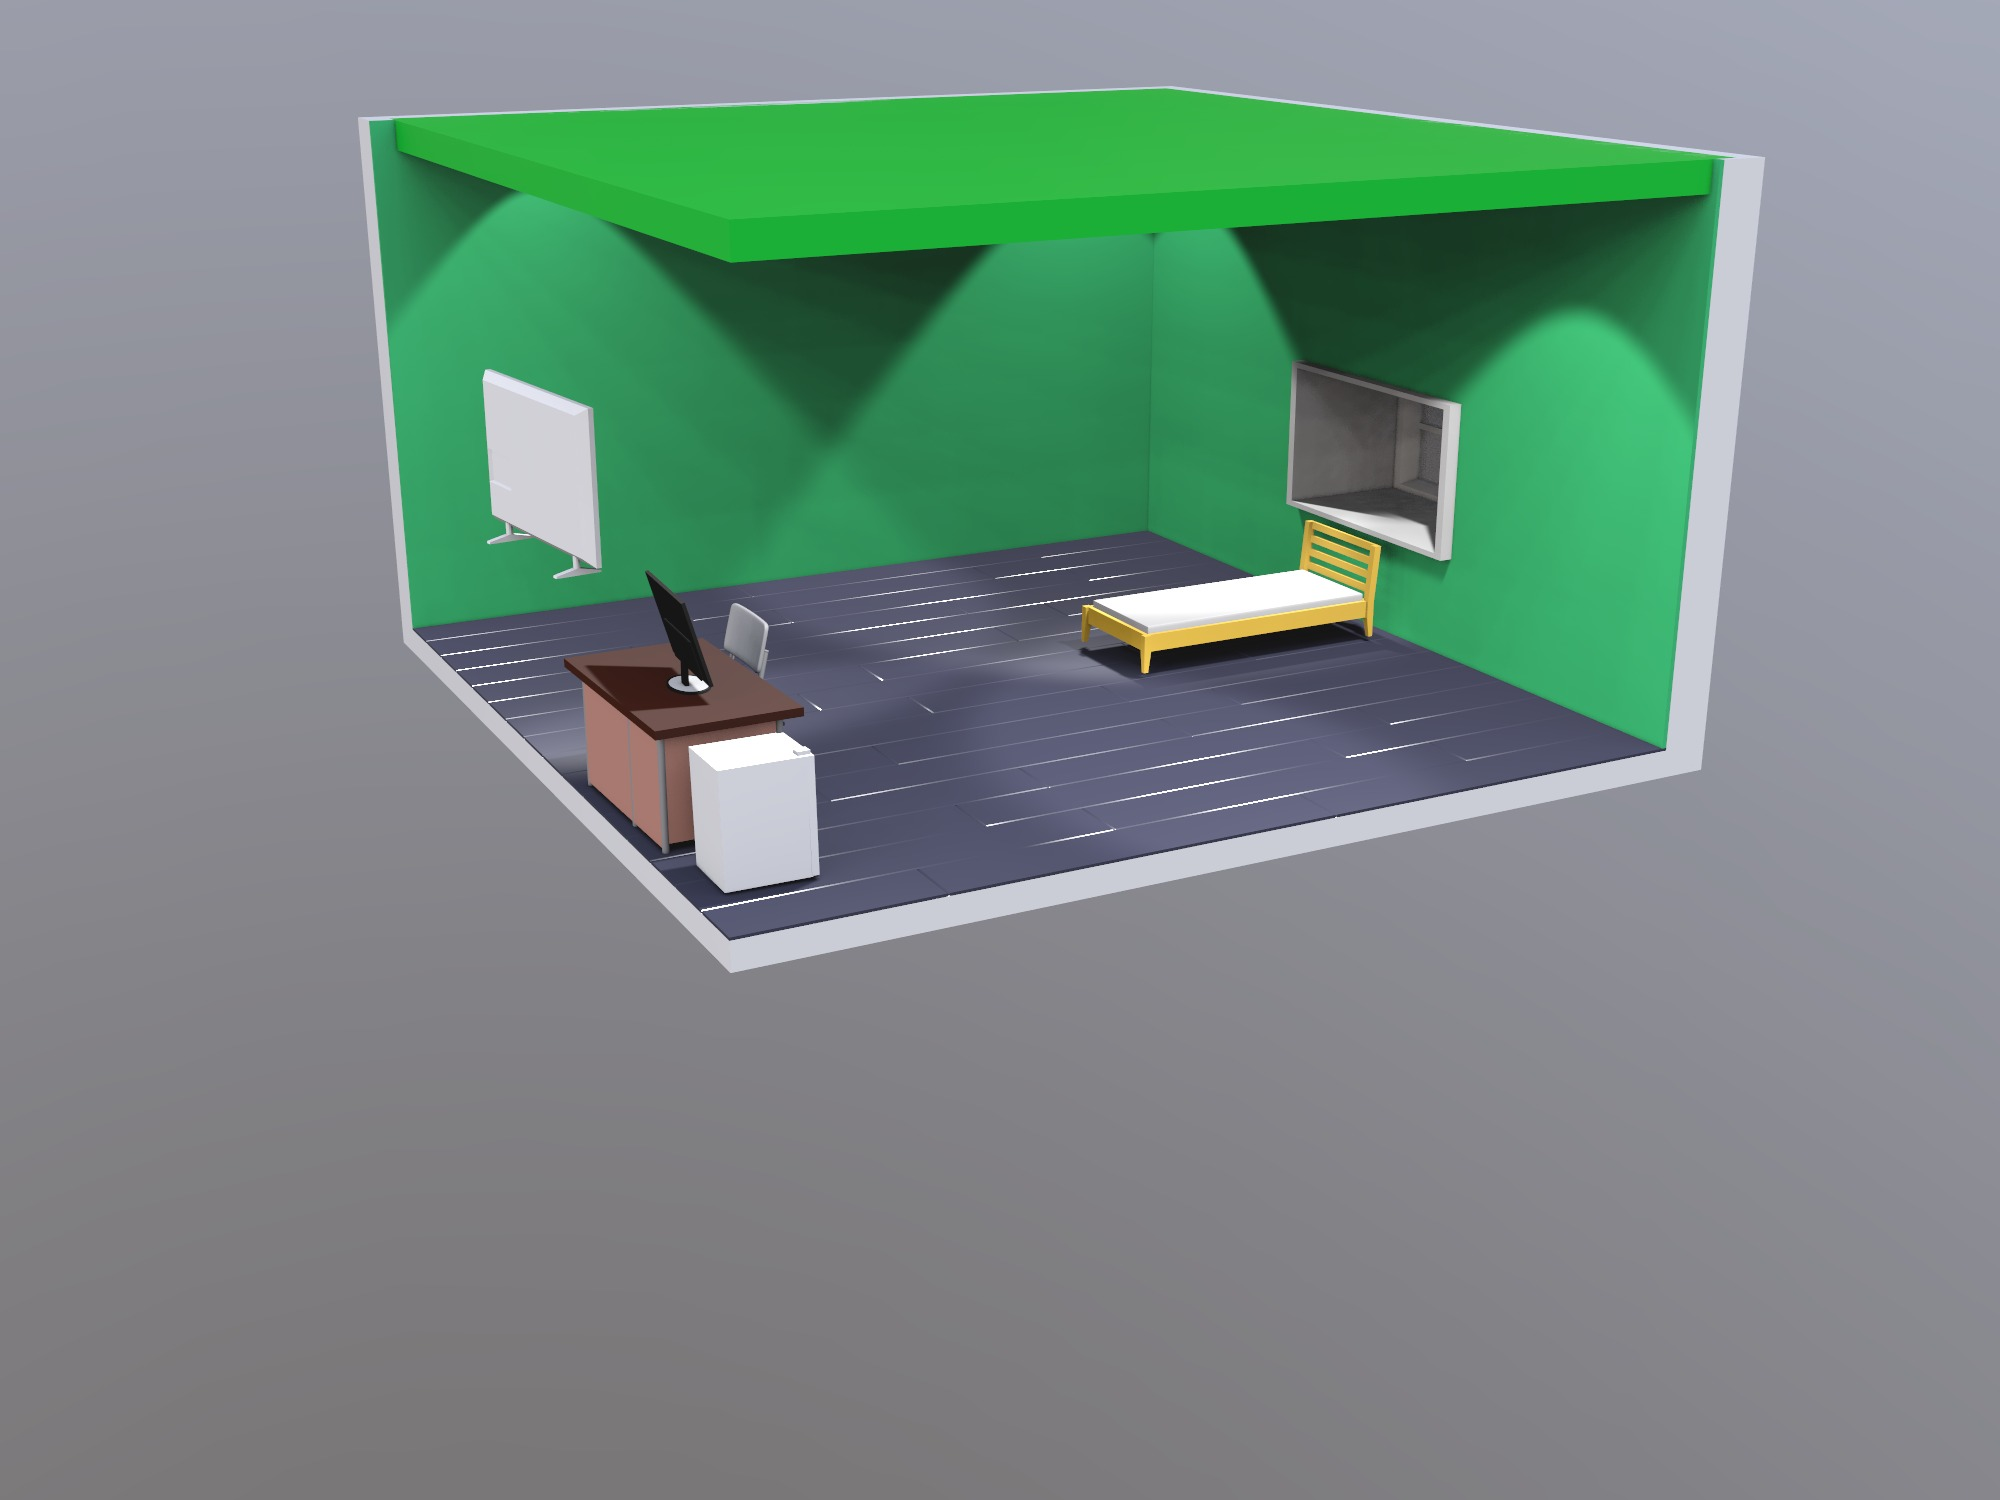 MY ROOM - 3D design by shayyab9 on Sep 22, 2018